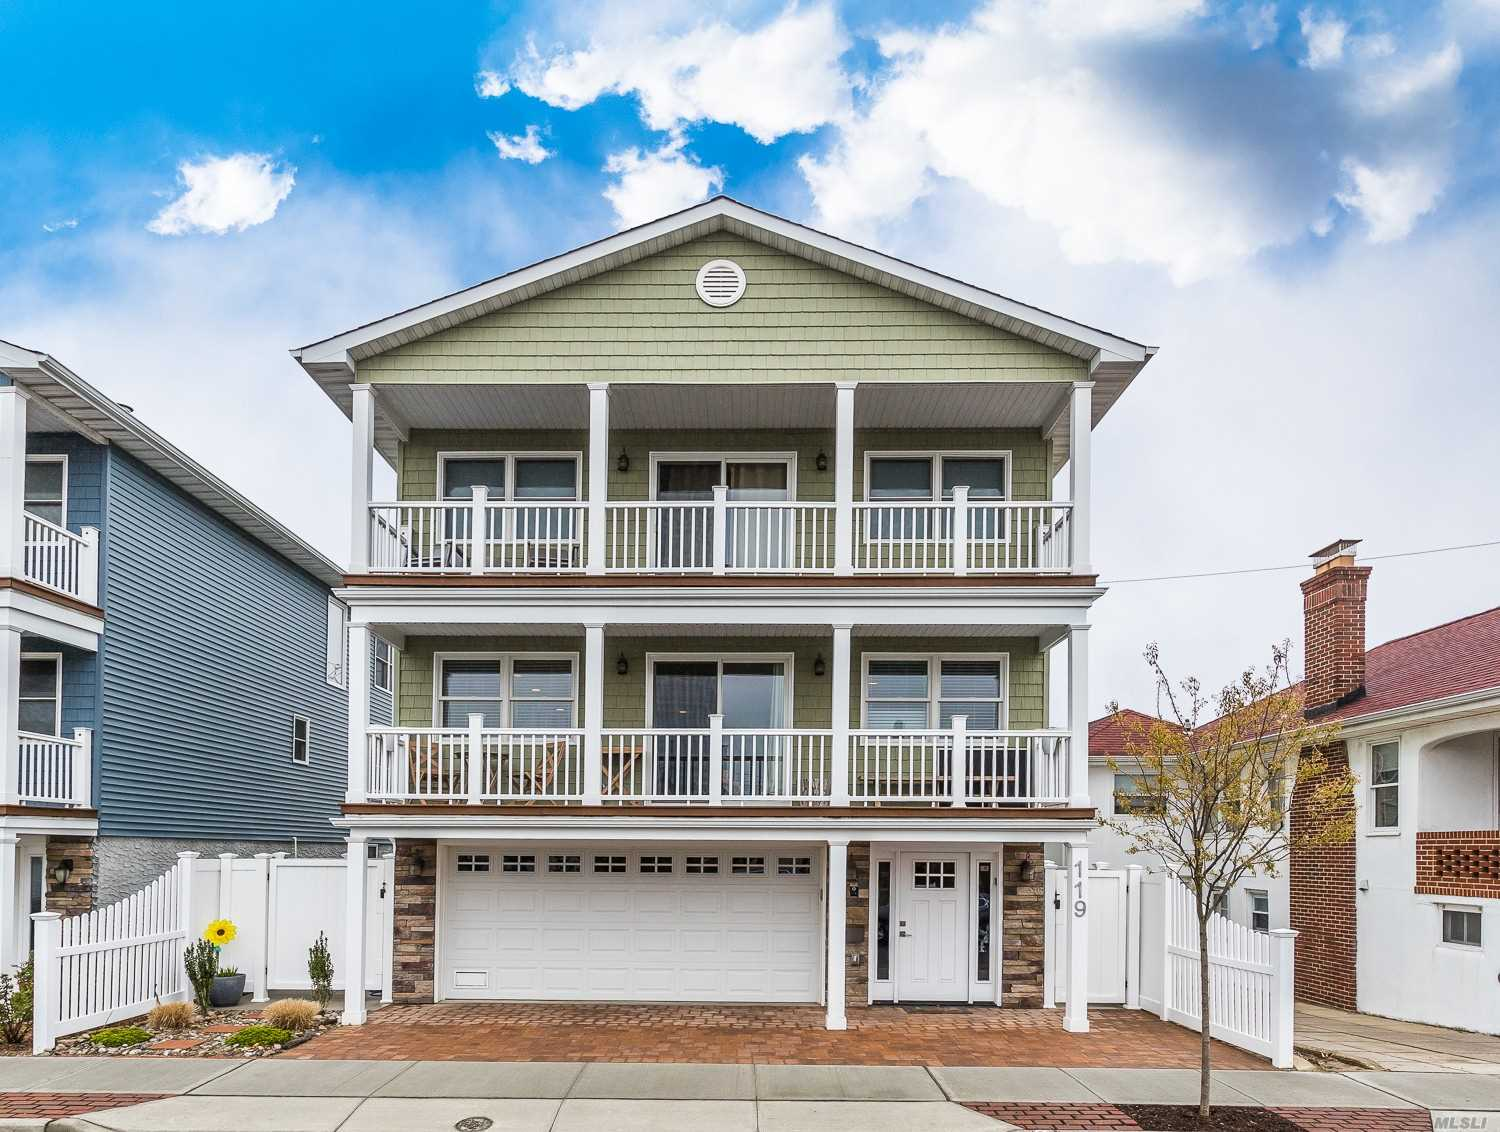 Spectacular FEMA-compliant colonial built 4 yrs ago just 2 blocks from the beach/boardwalk & minutes from all schools and the best restaurants, shopping & entertainment Long Beach has to offer! Eastern exposure & ocean views from the 2 balconies (off family room & master). Featuring a spacious bright family rm, custom EIK w/ stone counters, gas range & ss appliances; large living & dining rm w/ gas fireplace, master suite w/ WIC & full bath; ground fl has 2 car gar; office & gym/play area.